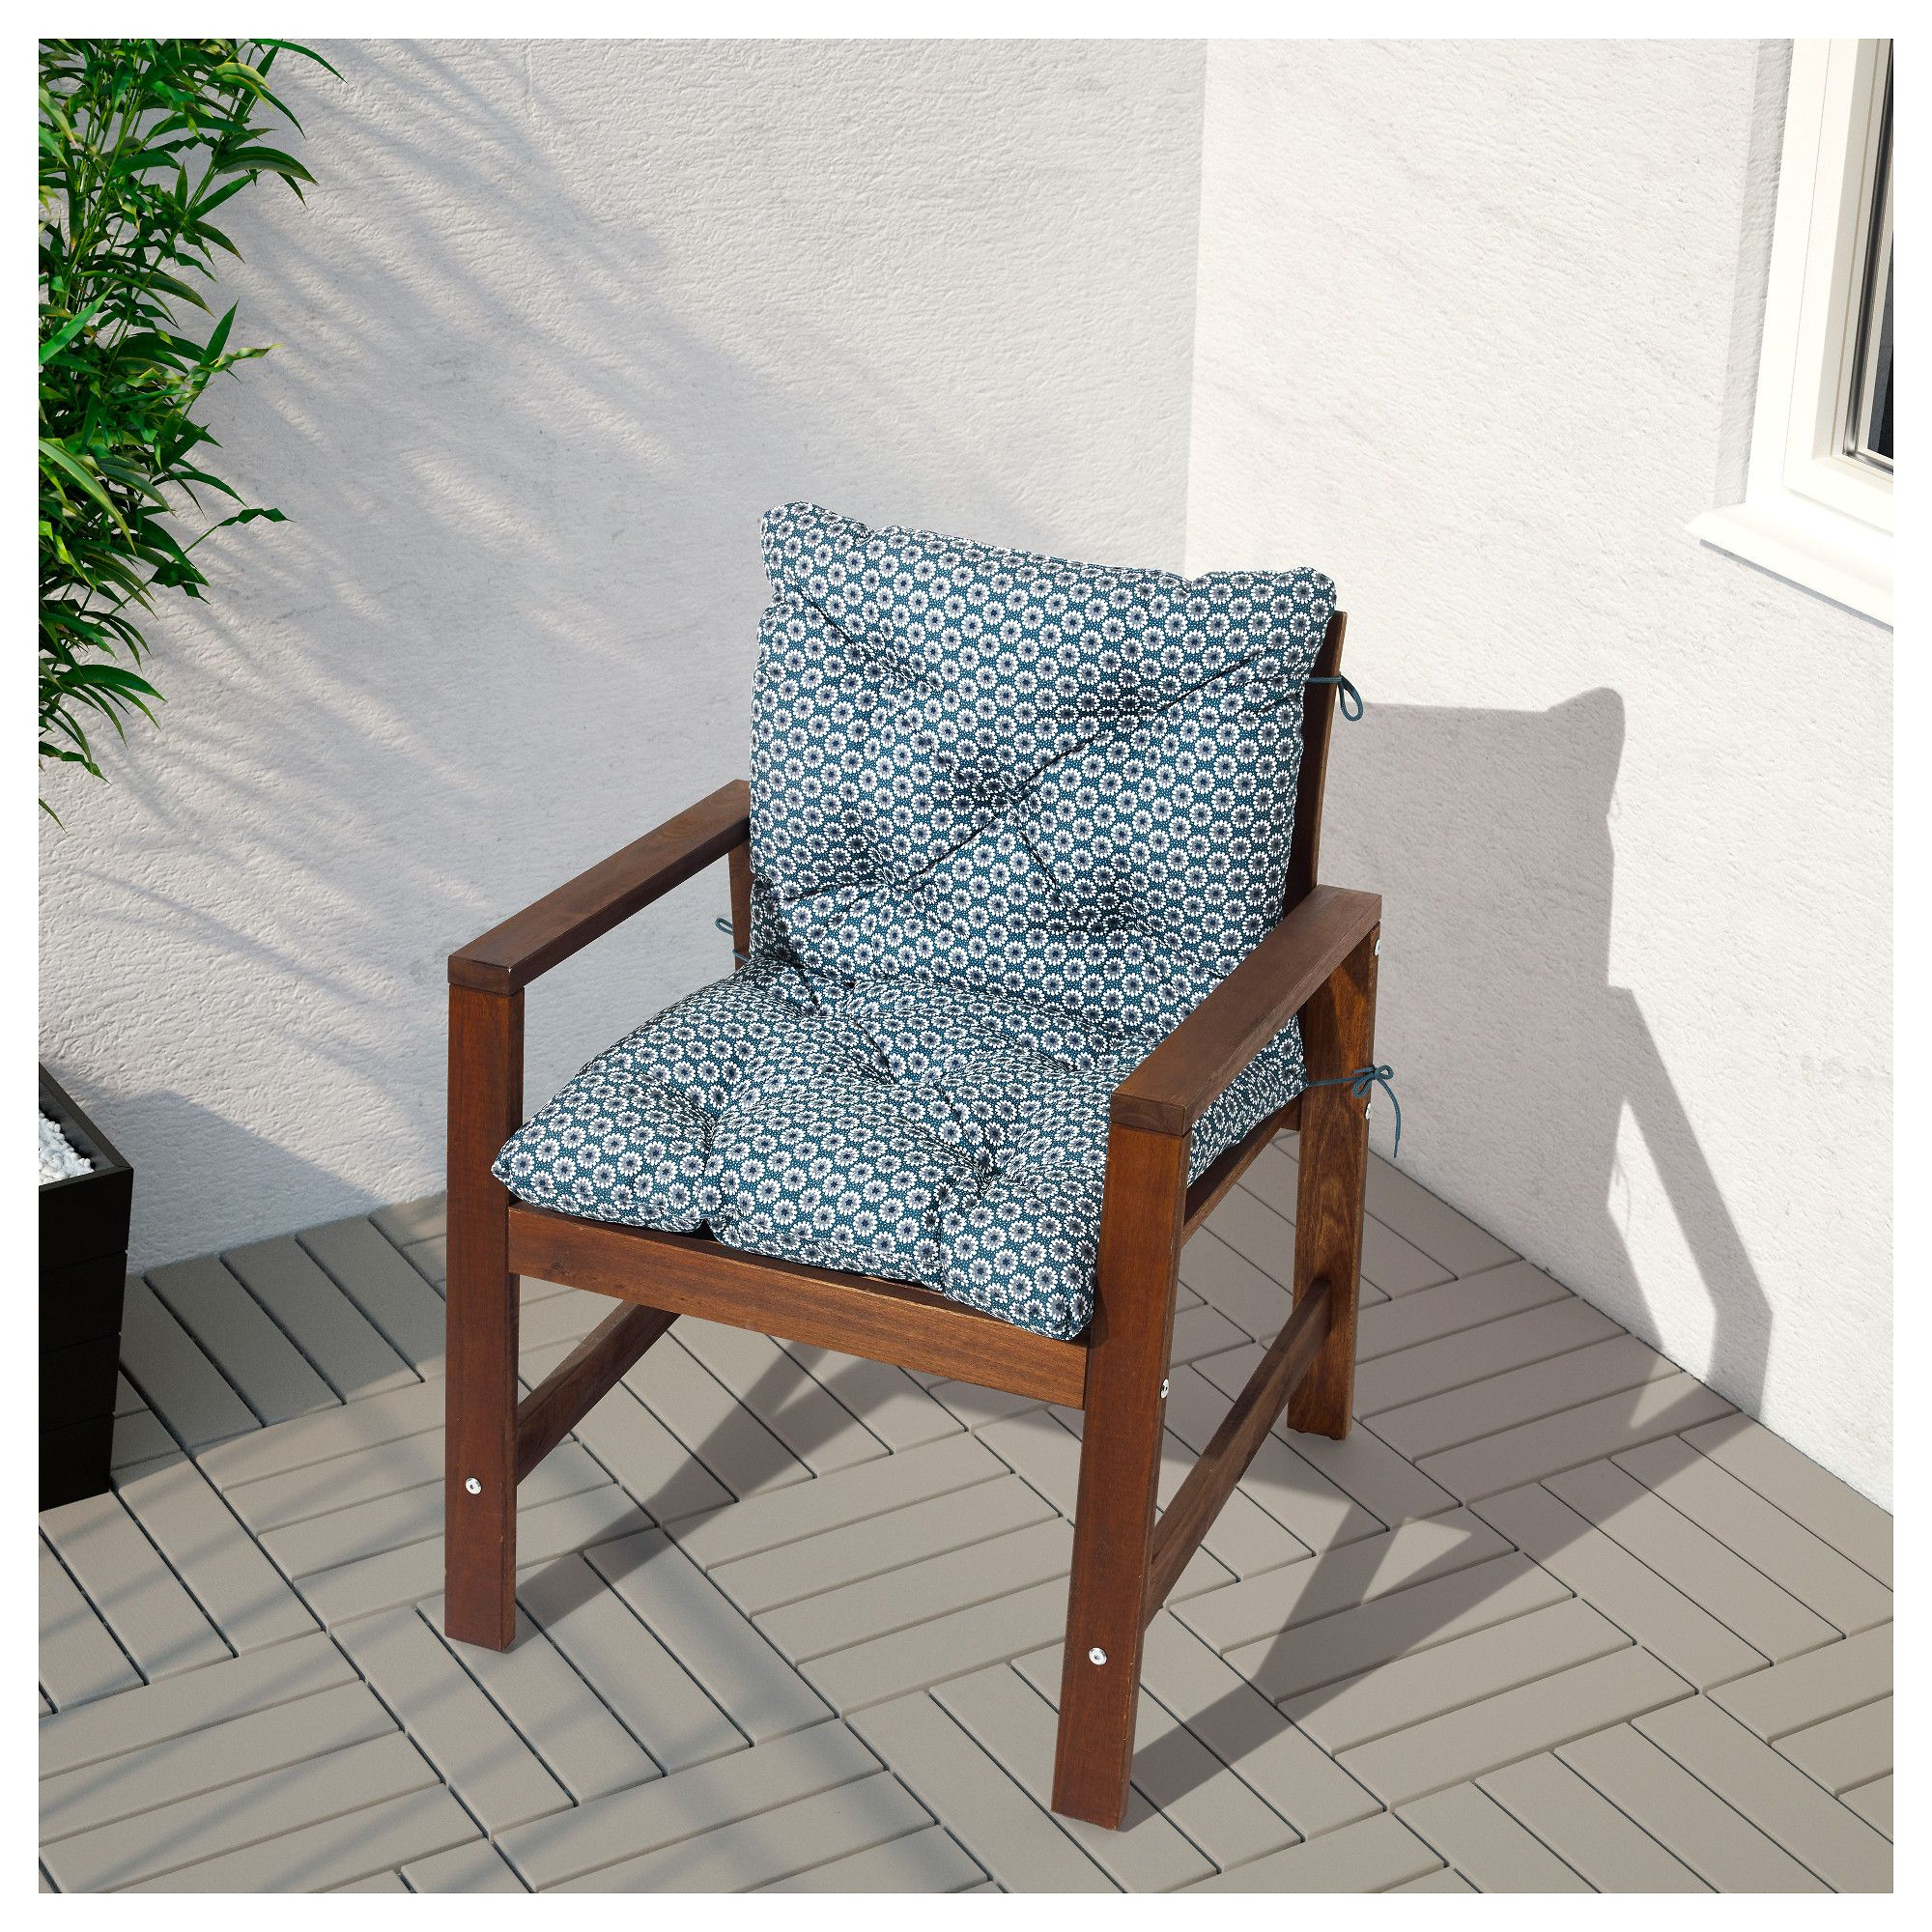 Äpplarö Armchair, Outdoor - Brown Stained Brown | Mobilier ... intérieur Banc De Jardin Ikea